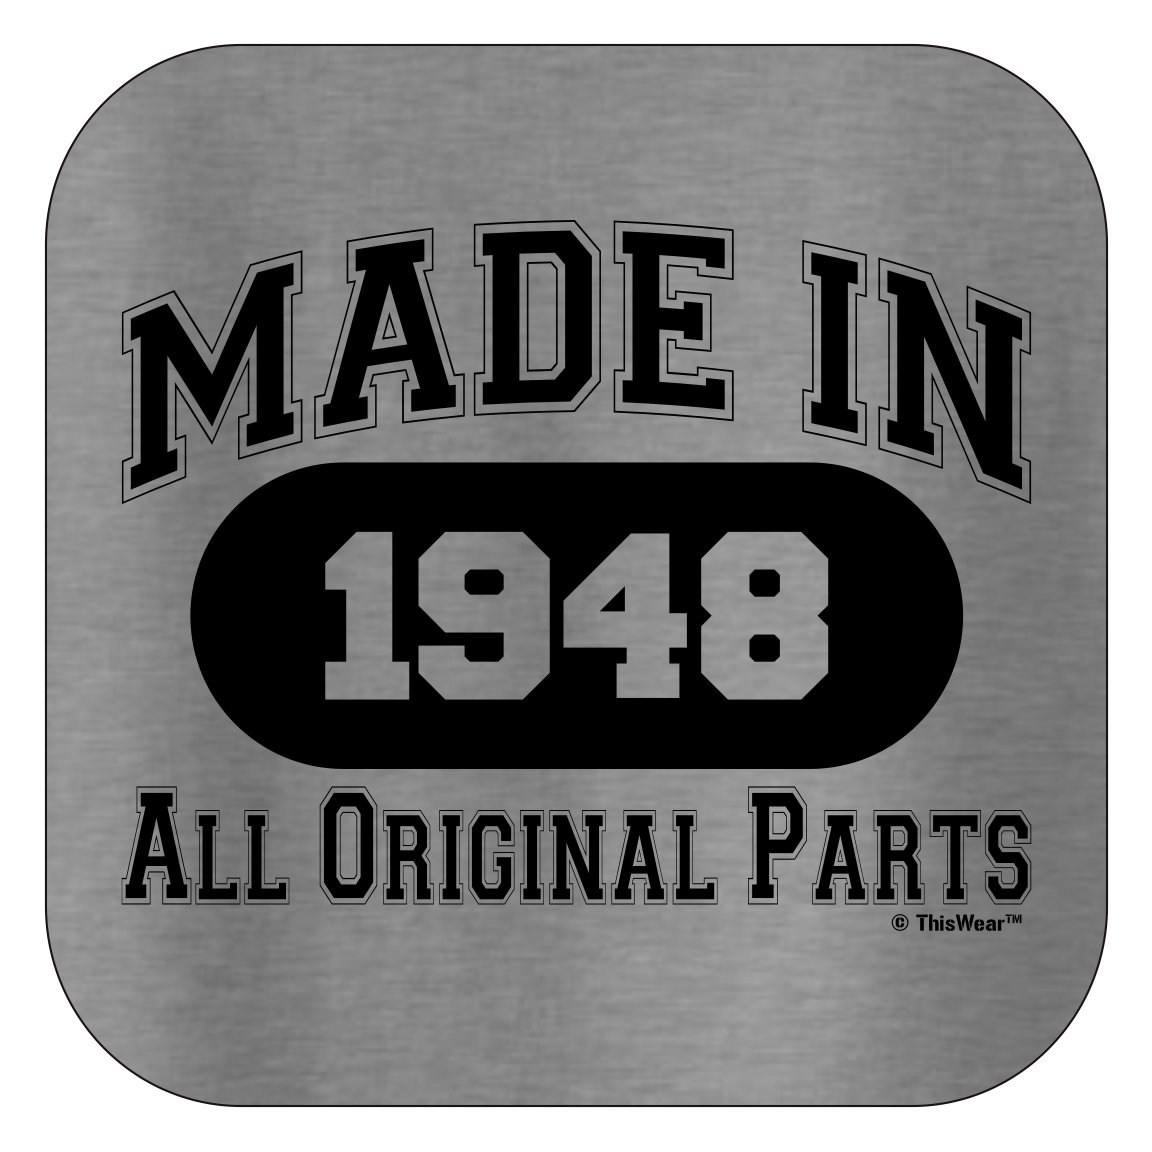 70th Birthday Gift Made 1948 All Original Parts T-Shirt XL Sport Grey by ThisWear (Image #3)